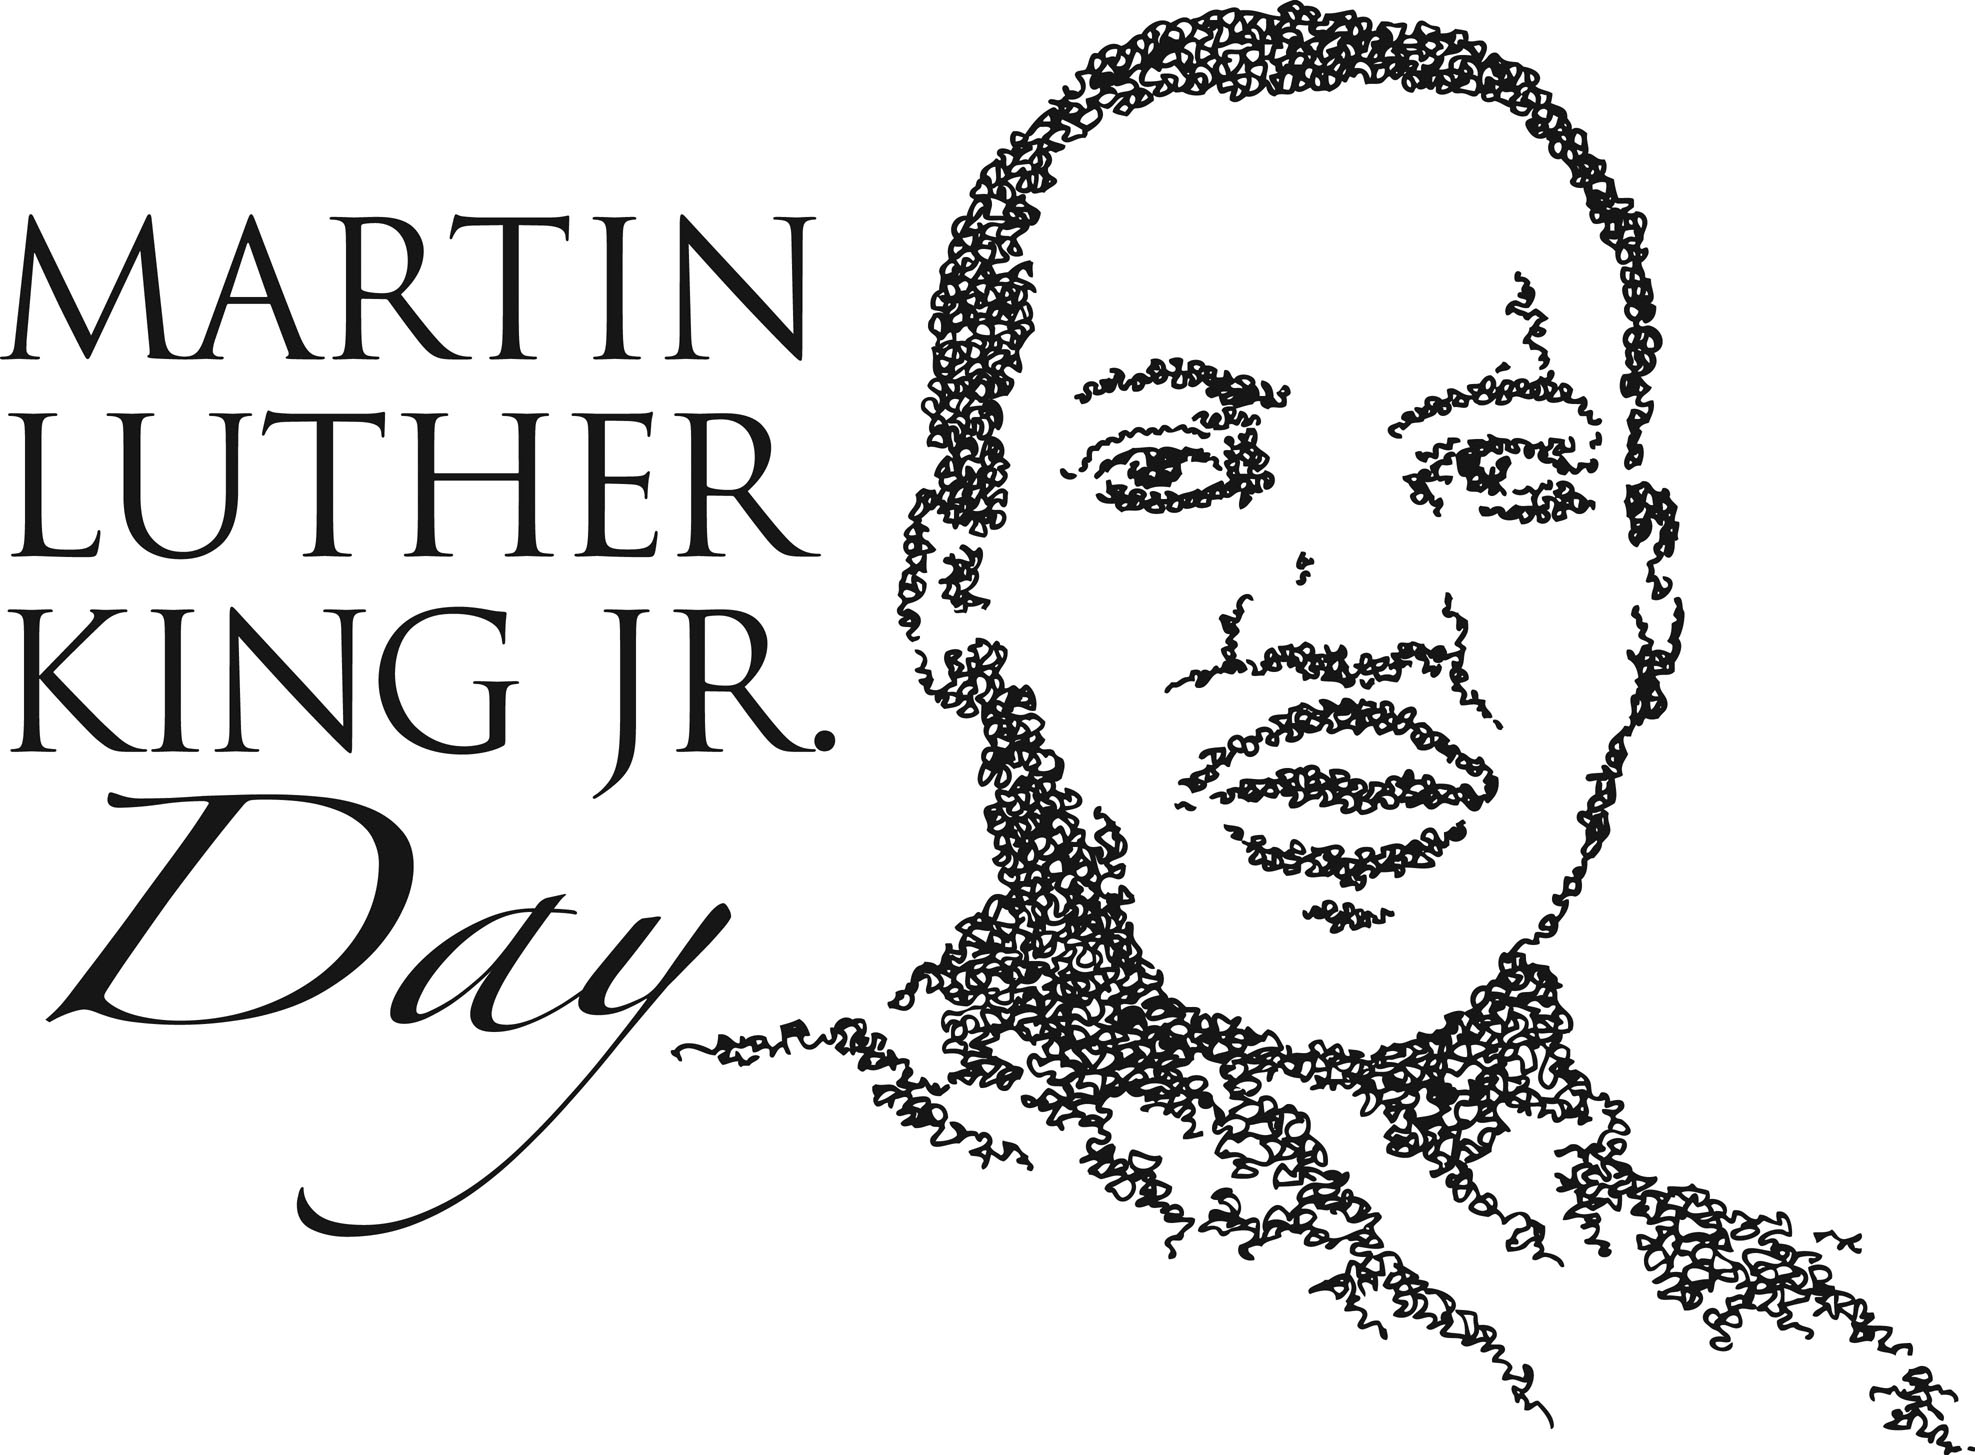 martin luther king jr day clipart clipart panda free clipart images rh clipartpanda com milk clipart black and white milk clip art free